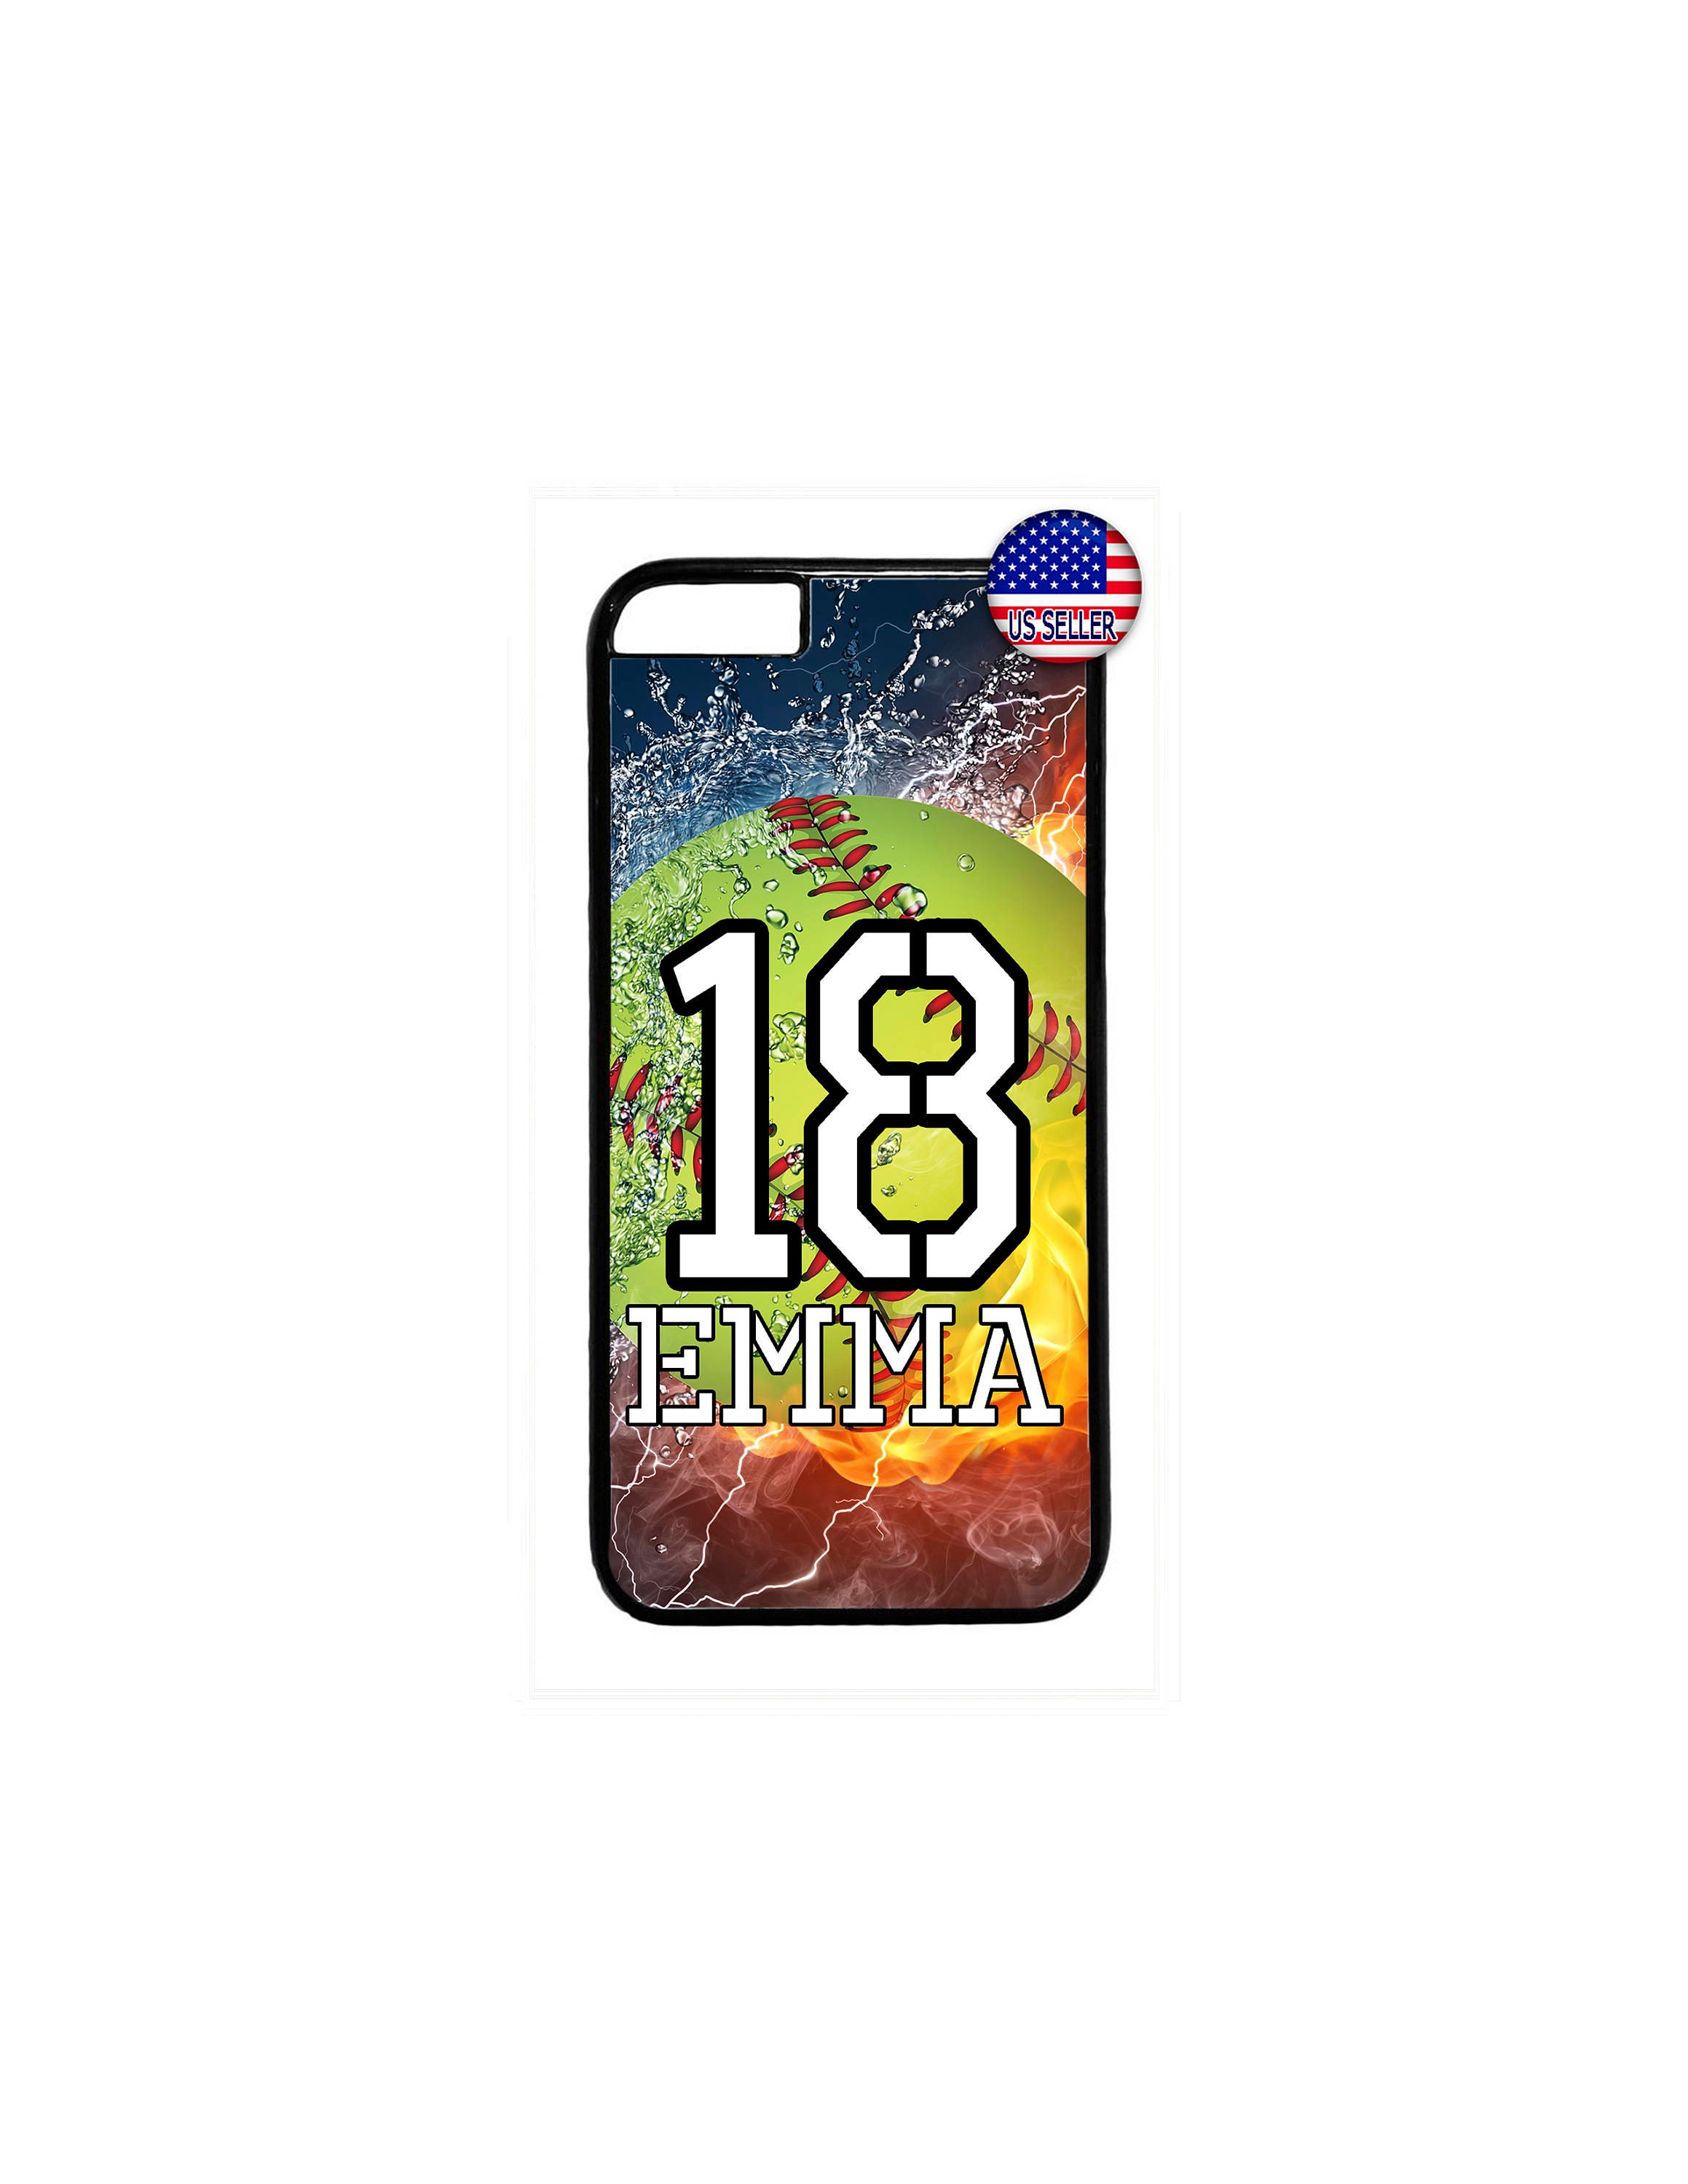 on sale 874e6 66d3c Personalized Name Number Softball Custom slim Case Cover for iPhone XS max  Xr X 8 7 6 6s PLUS 5 5s SE iPod Touch 5 6 7